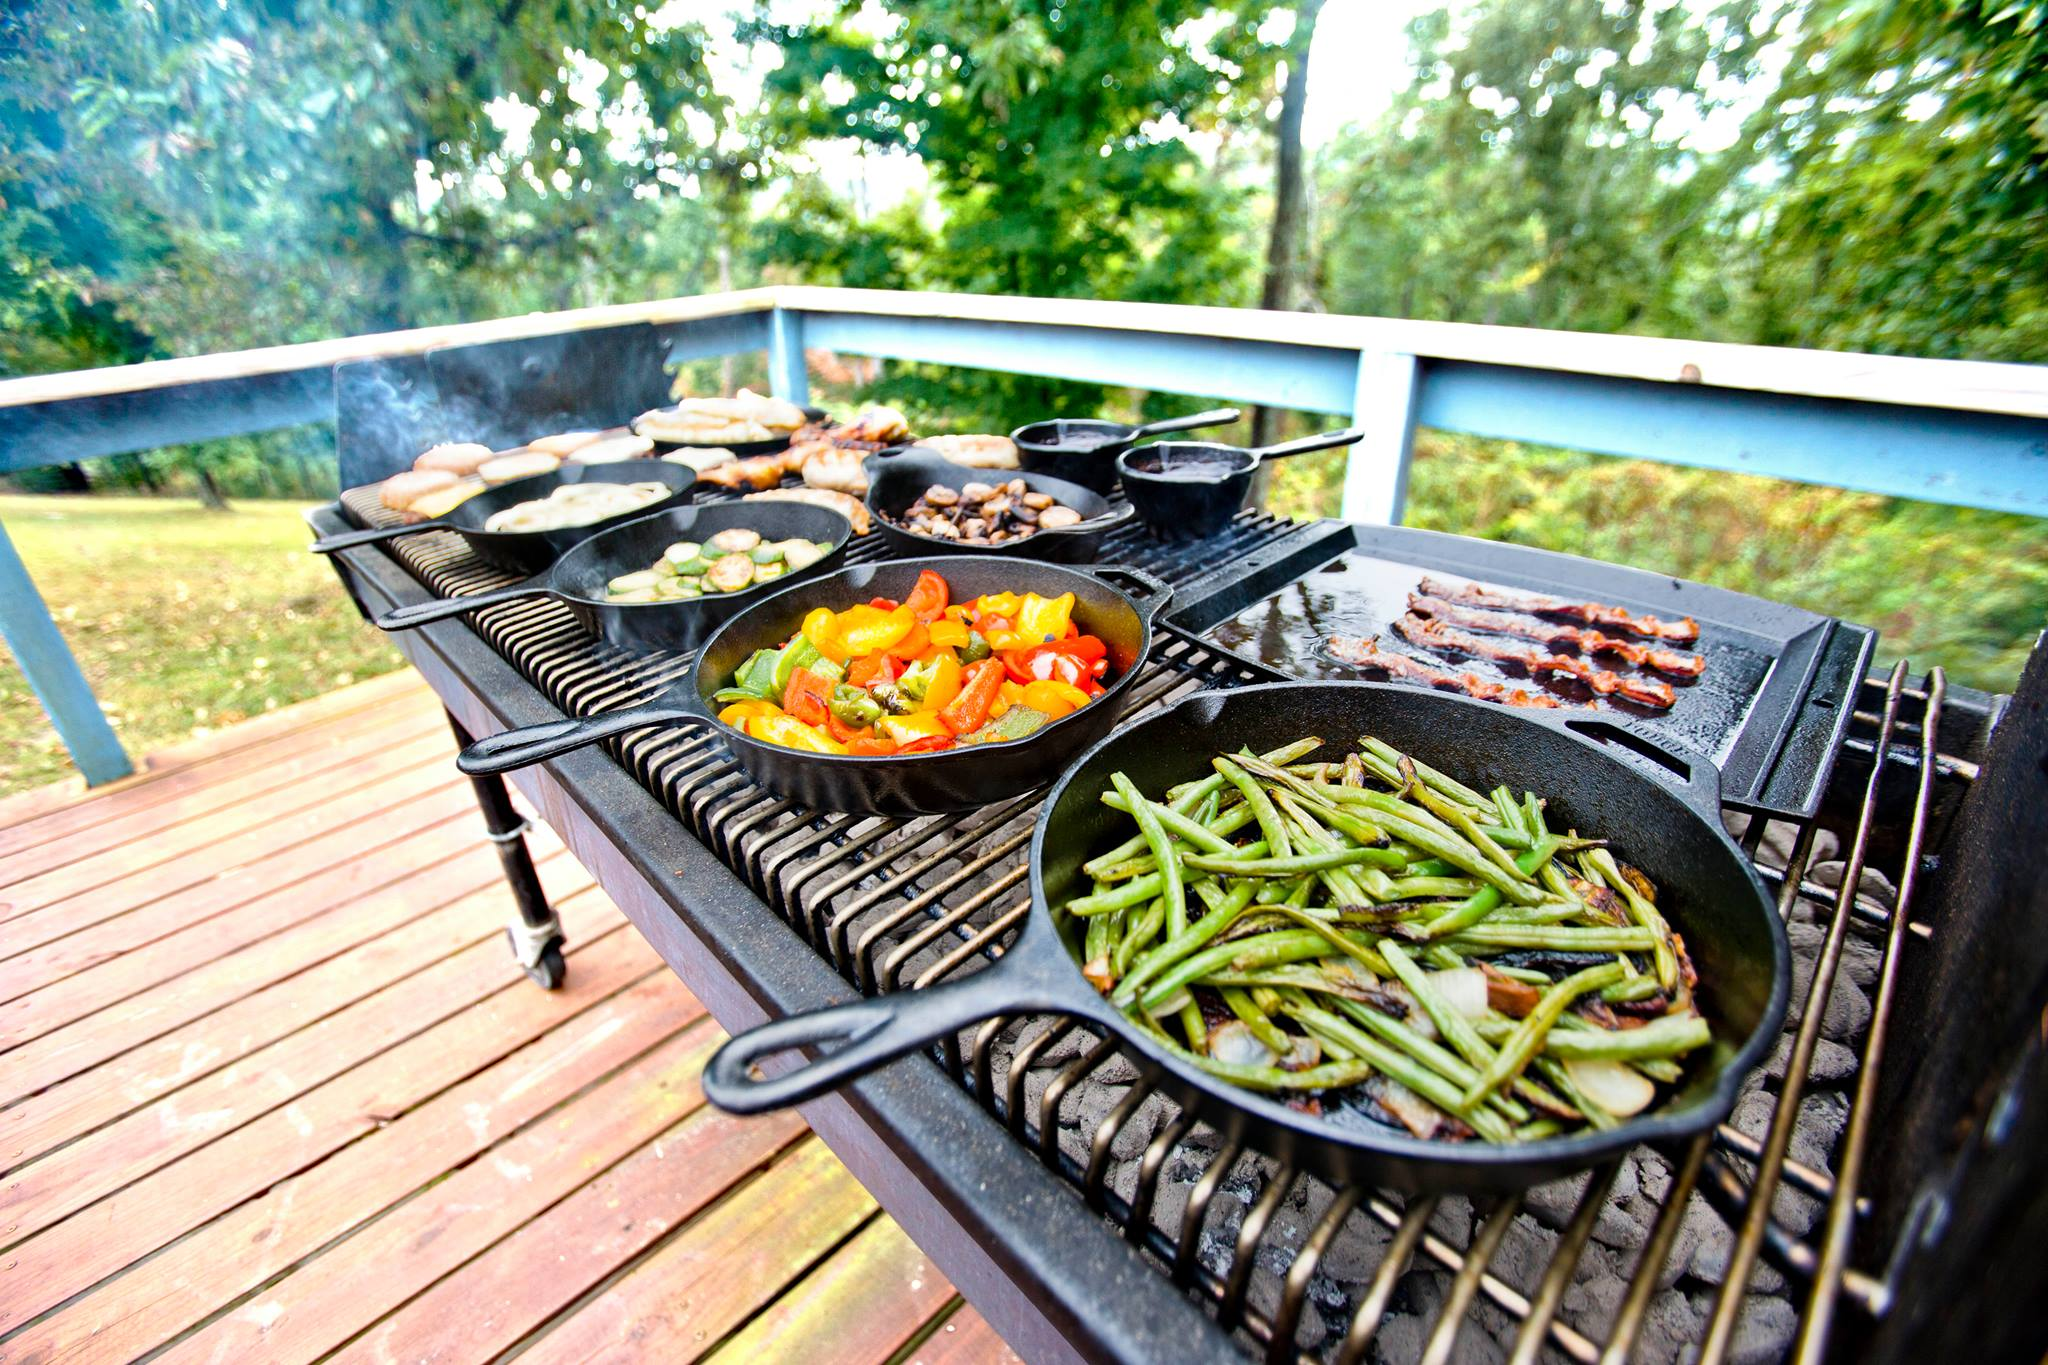 Grilling With Cast Iron In A Firepit